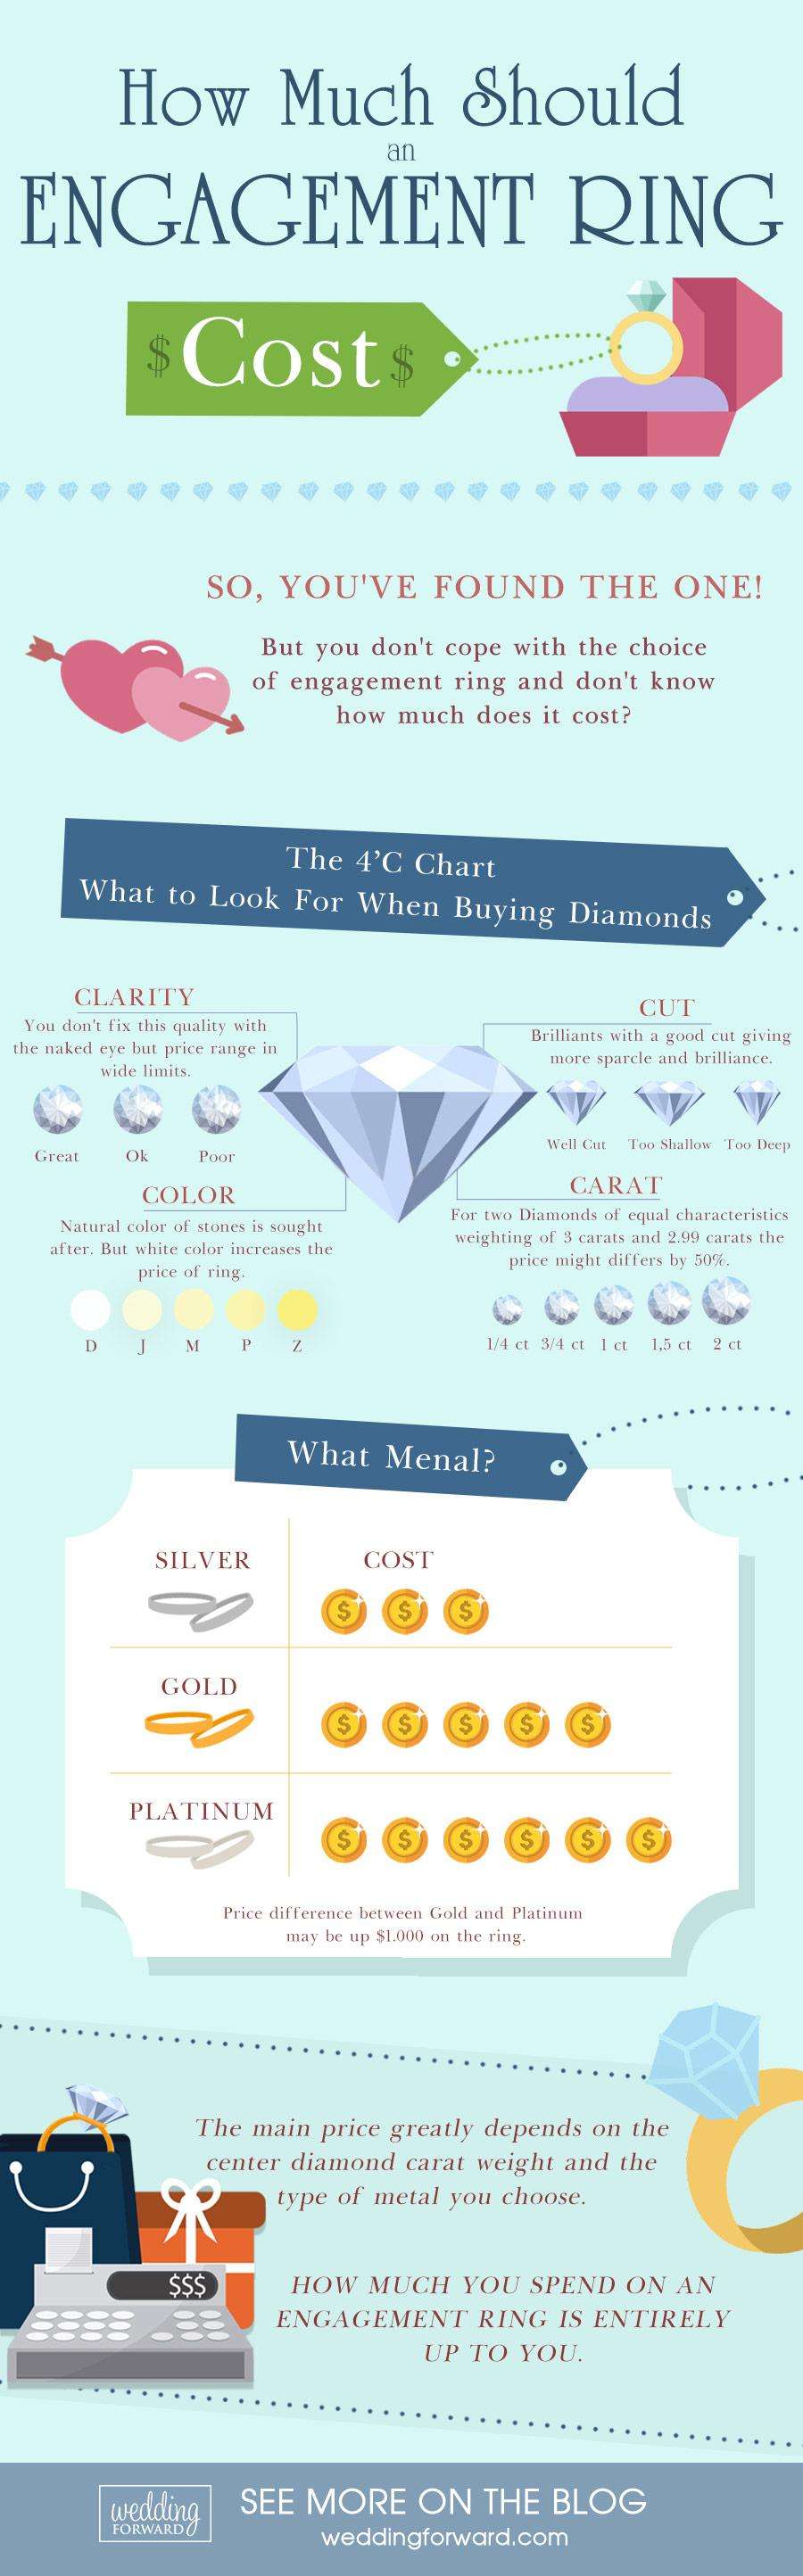 how much should engagement ring cost tips for choice